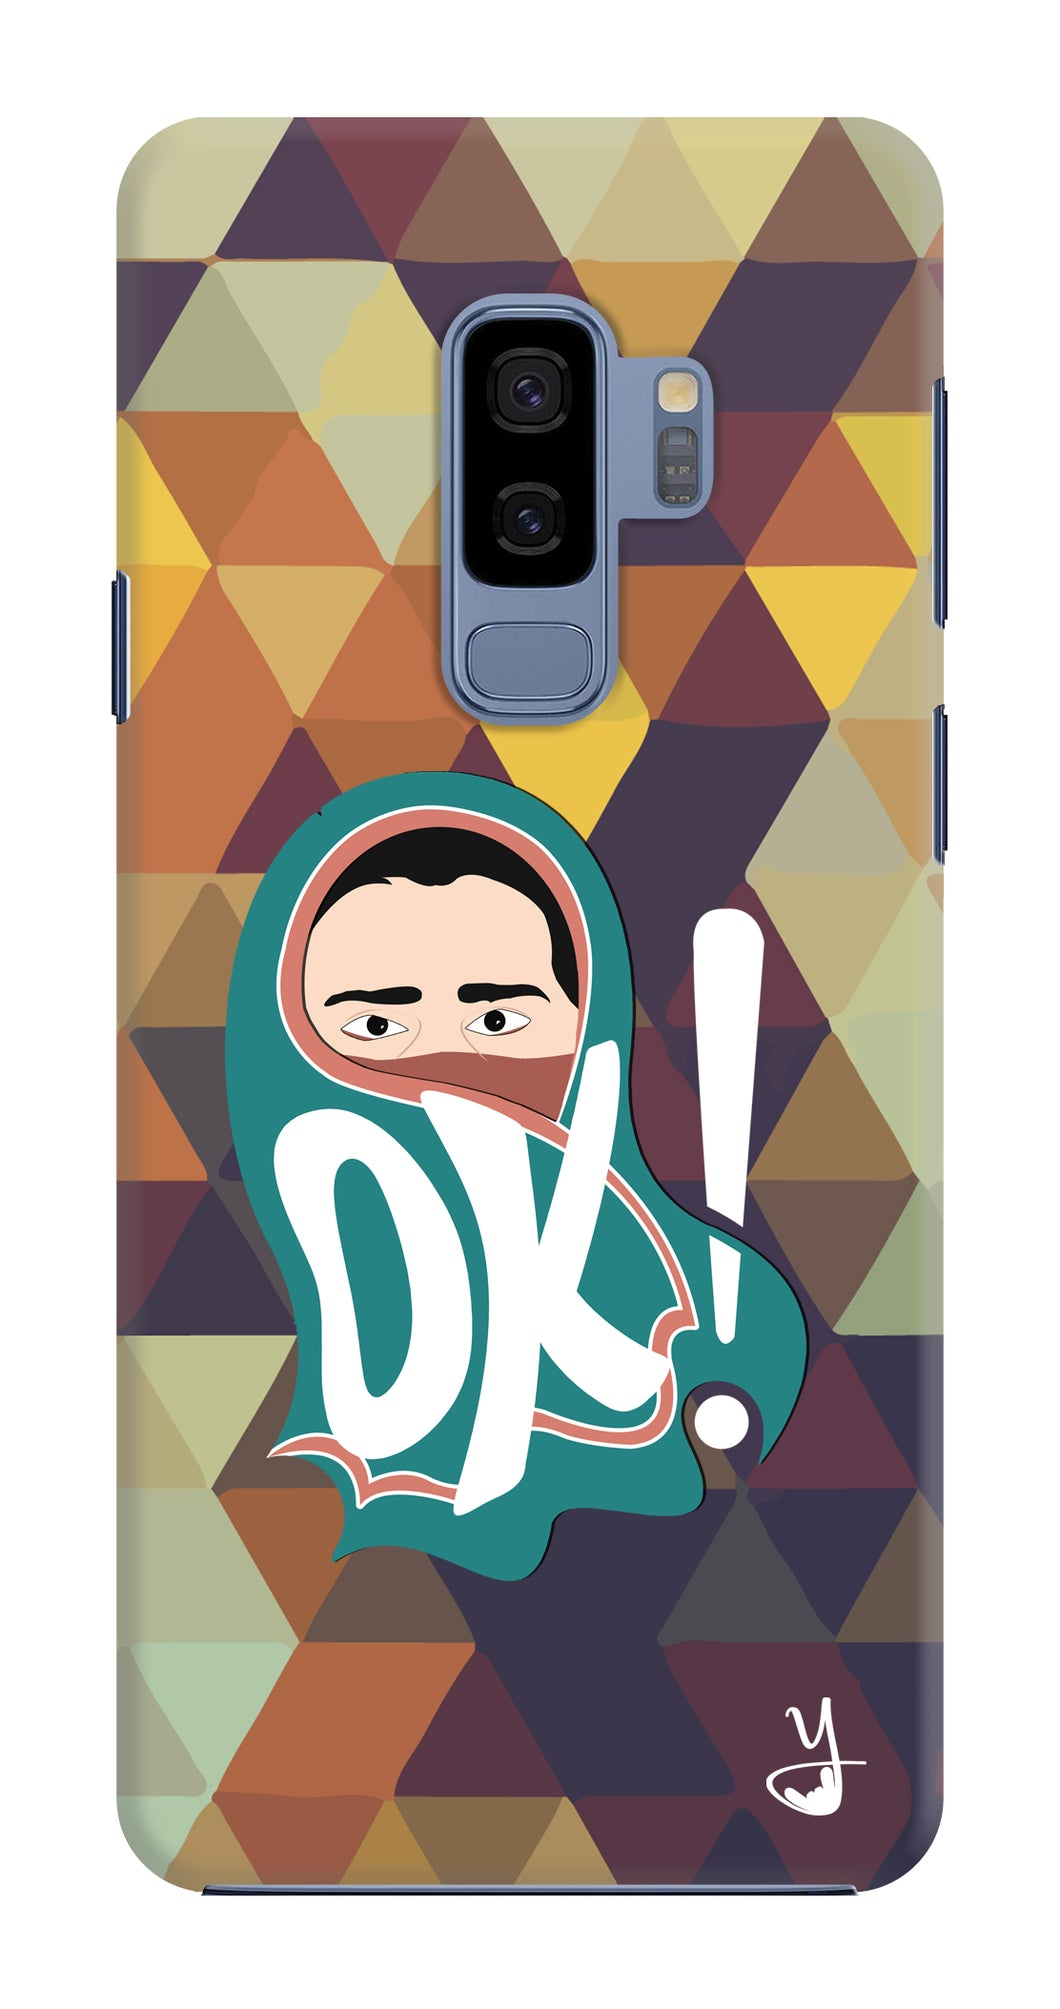 Mummy's Ok Edition for Samsung Galaxy S9 Plus